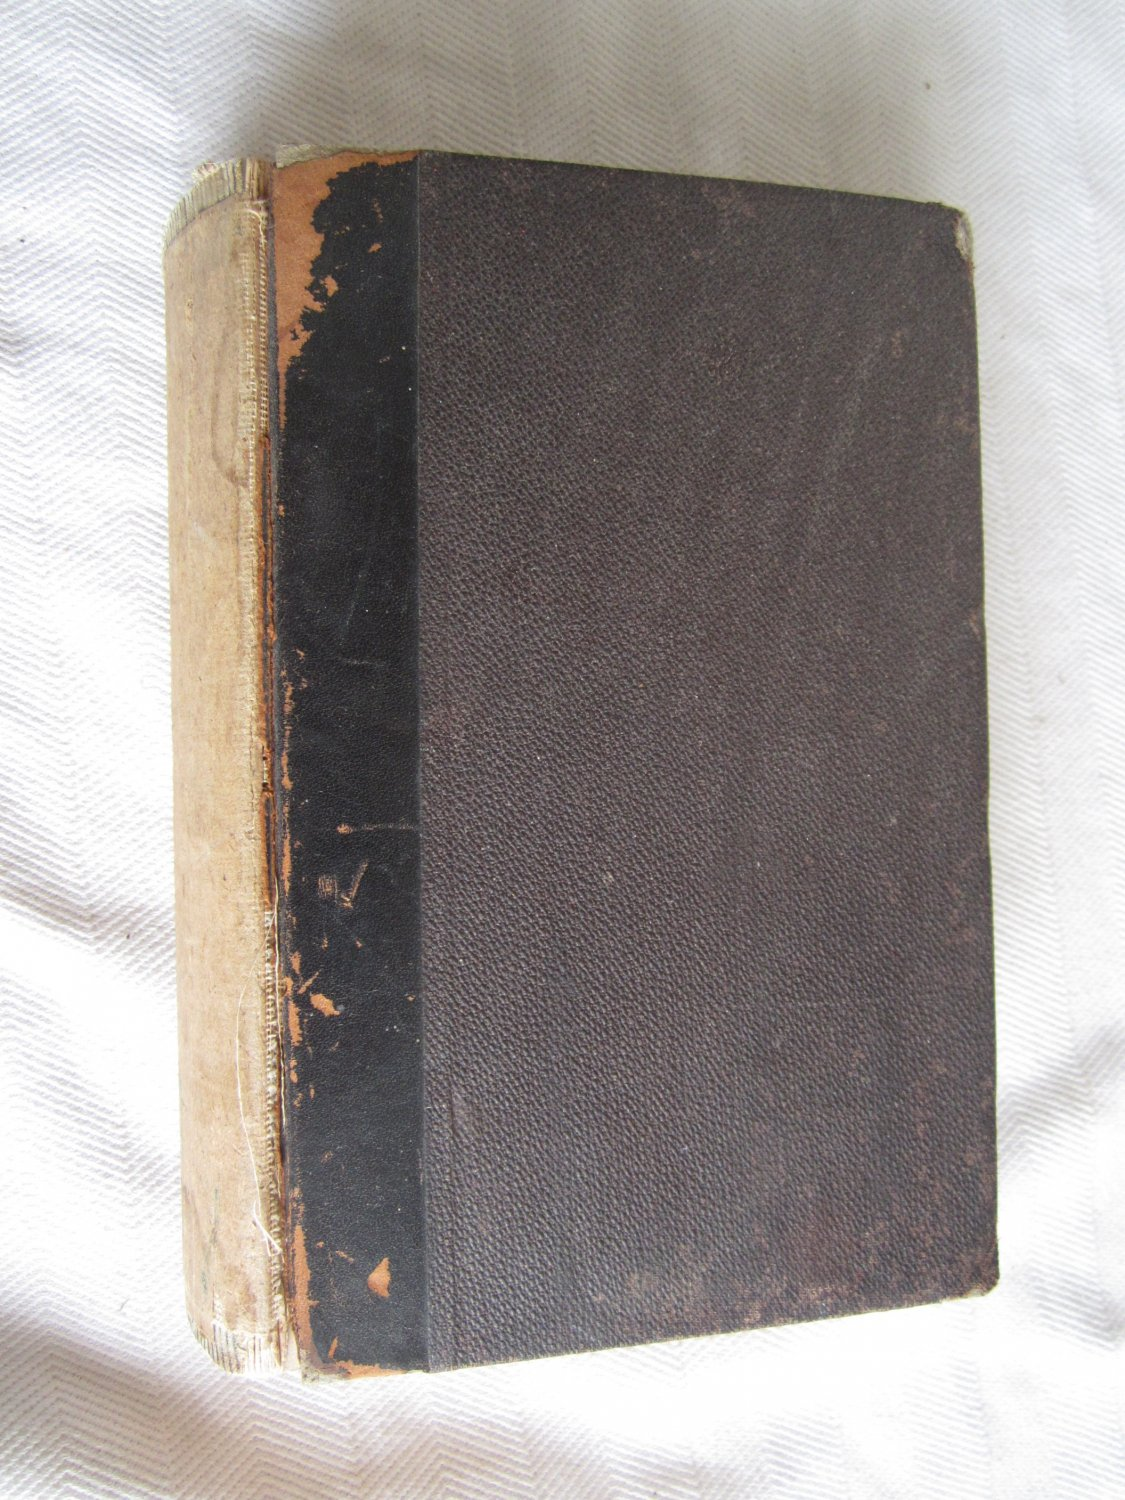 A General History for Colleges and High Schools P. V. N. Myers (1901) (WCC2)